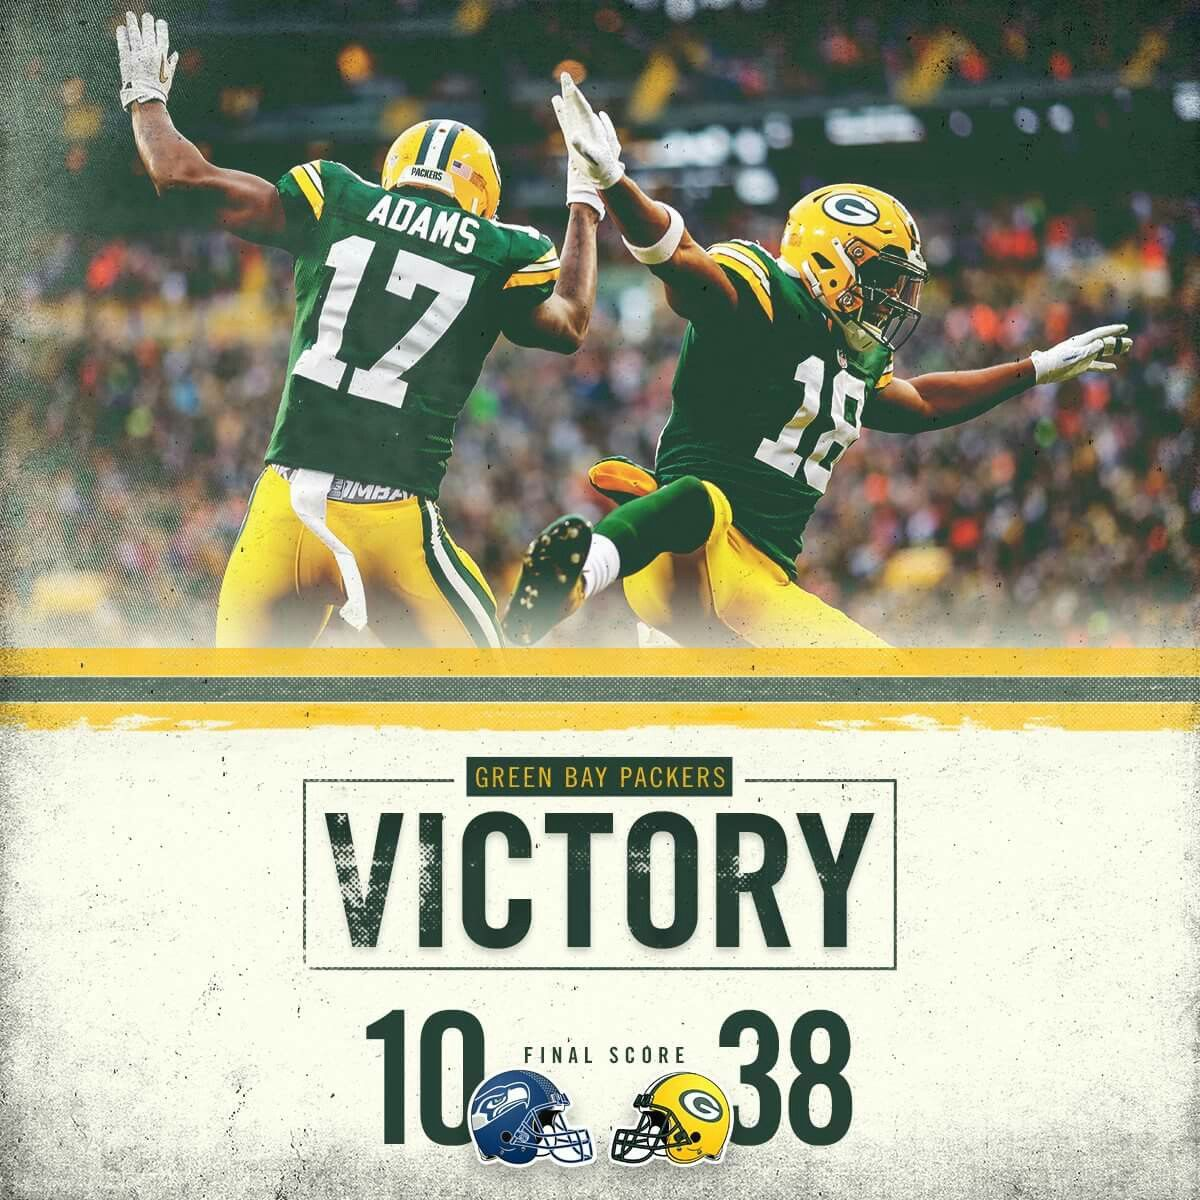 Great Win Green Bay Packers Nfl Redzone Packers Football